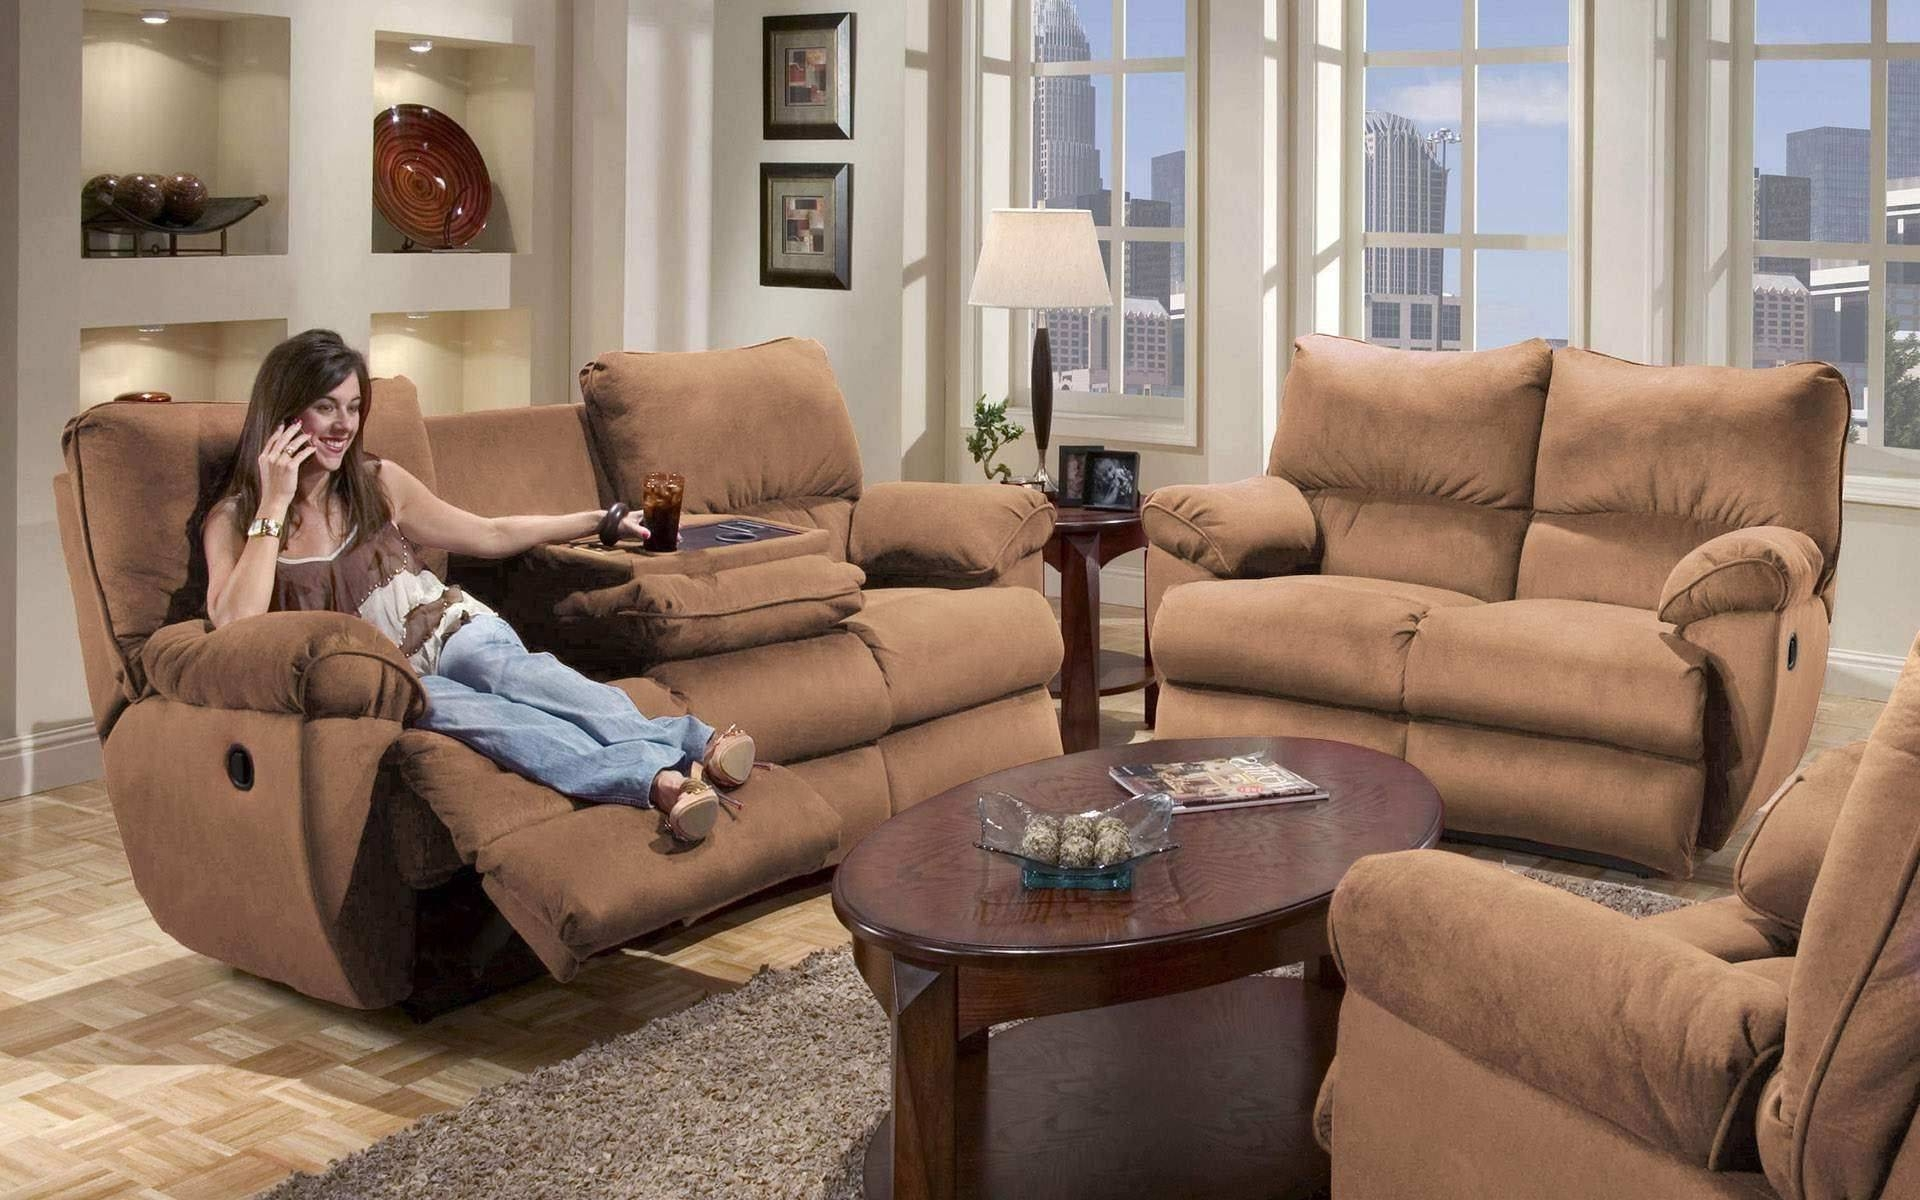 Cozy Sectional Sofas | Best Sofas Ideas - Sofascouch regarding Cozy Sectional Sofas (Image 6 of 30)